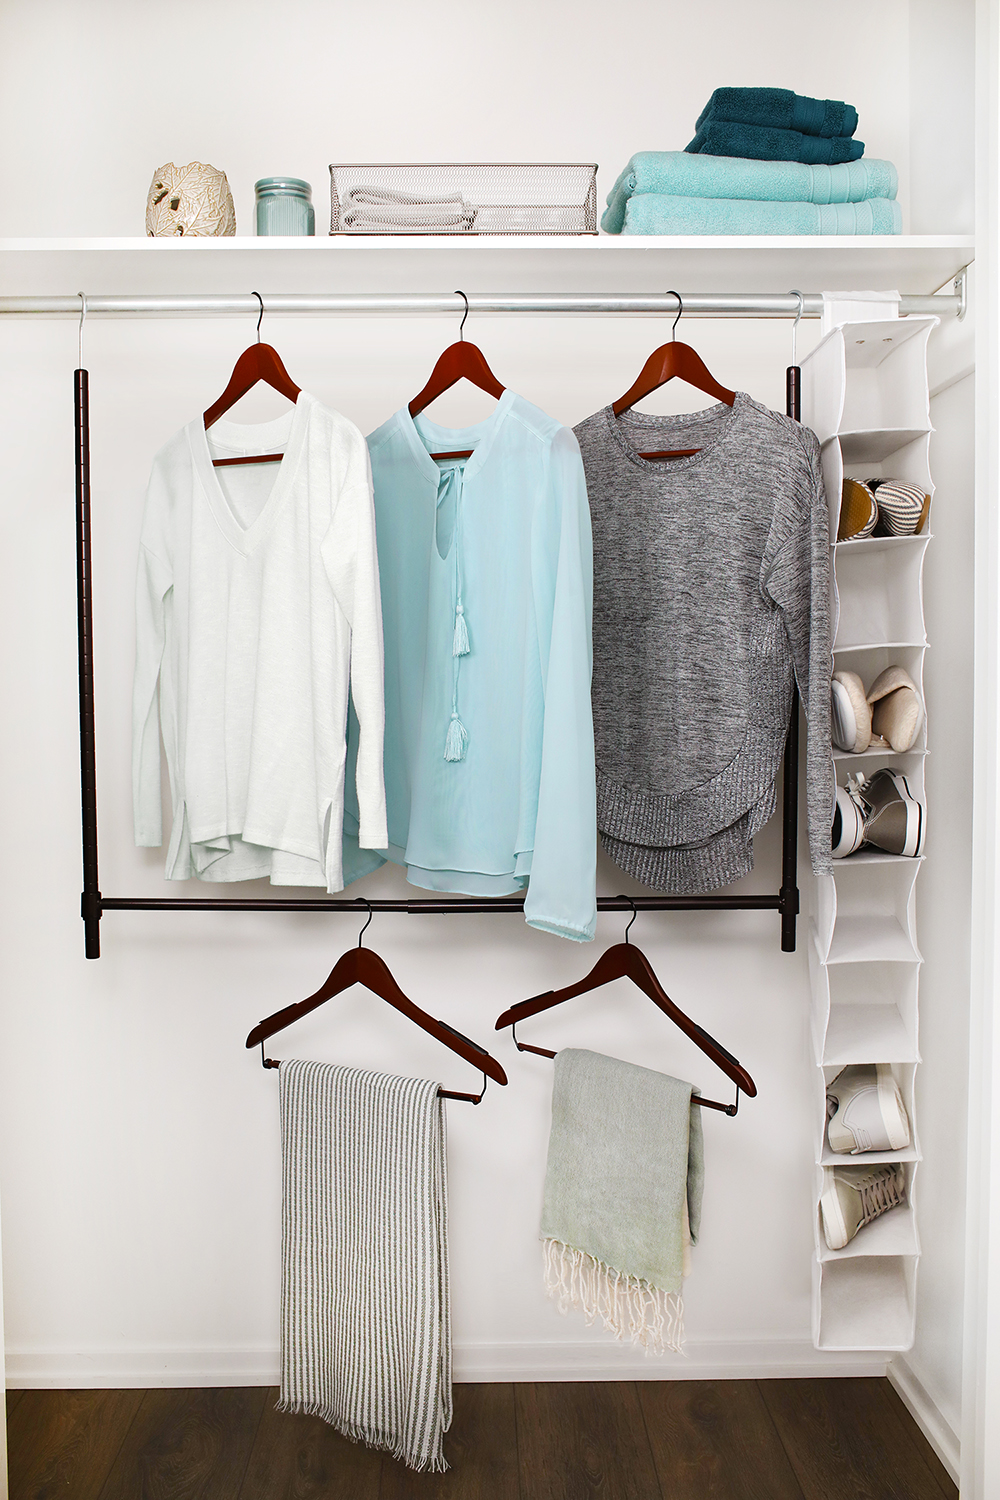 Double The Capacity Of Your Closet By Installing An Expandable Lower Closet  Rod From Tidy Living. The Secondary Rod Is Easy To Install And Creates A  Lower ...